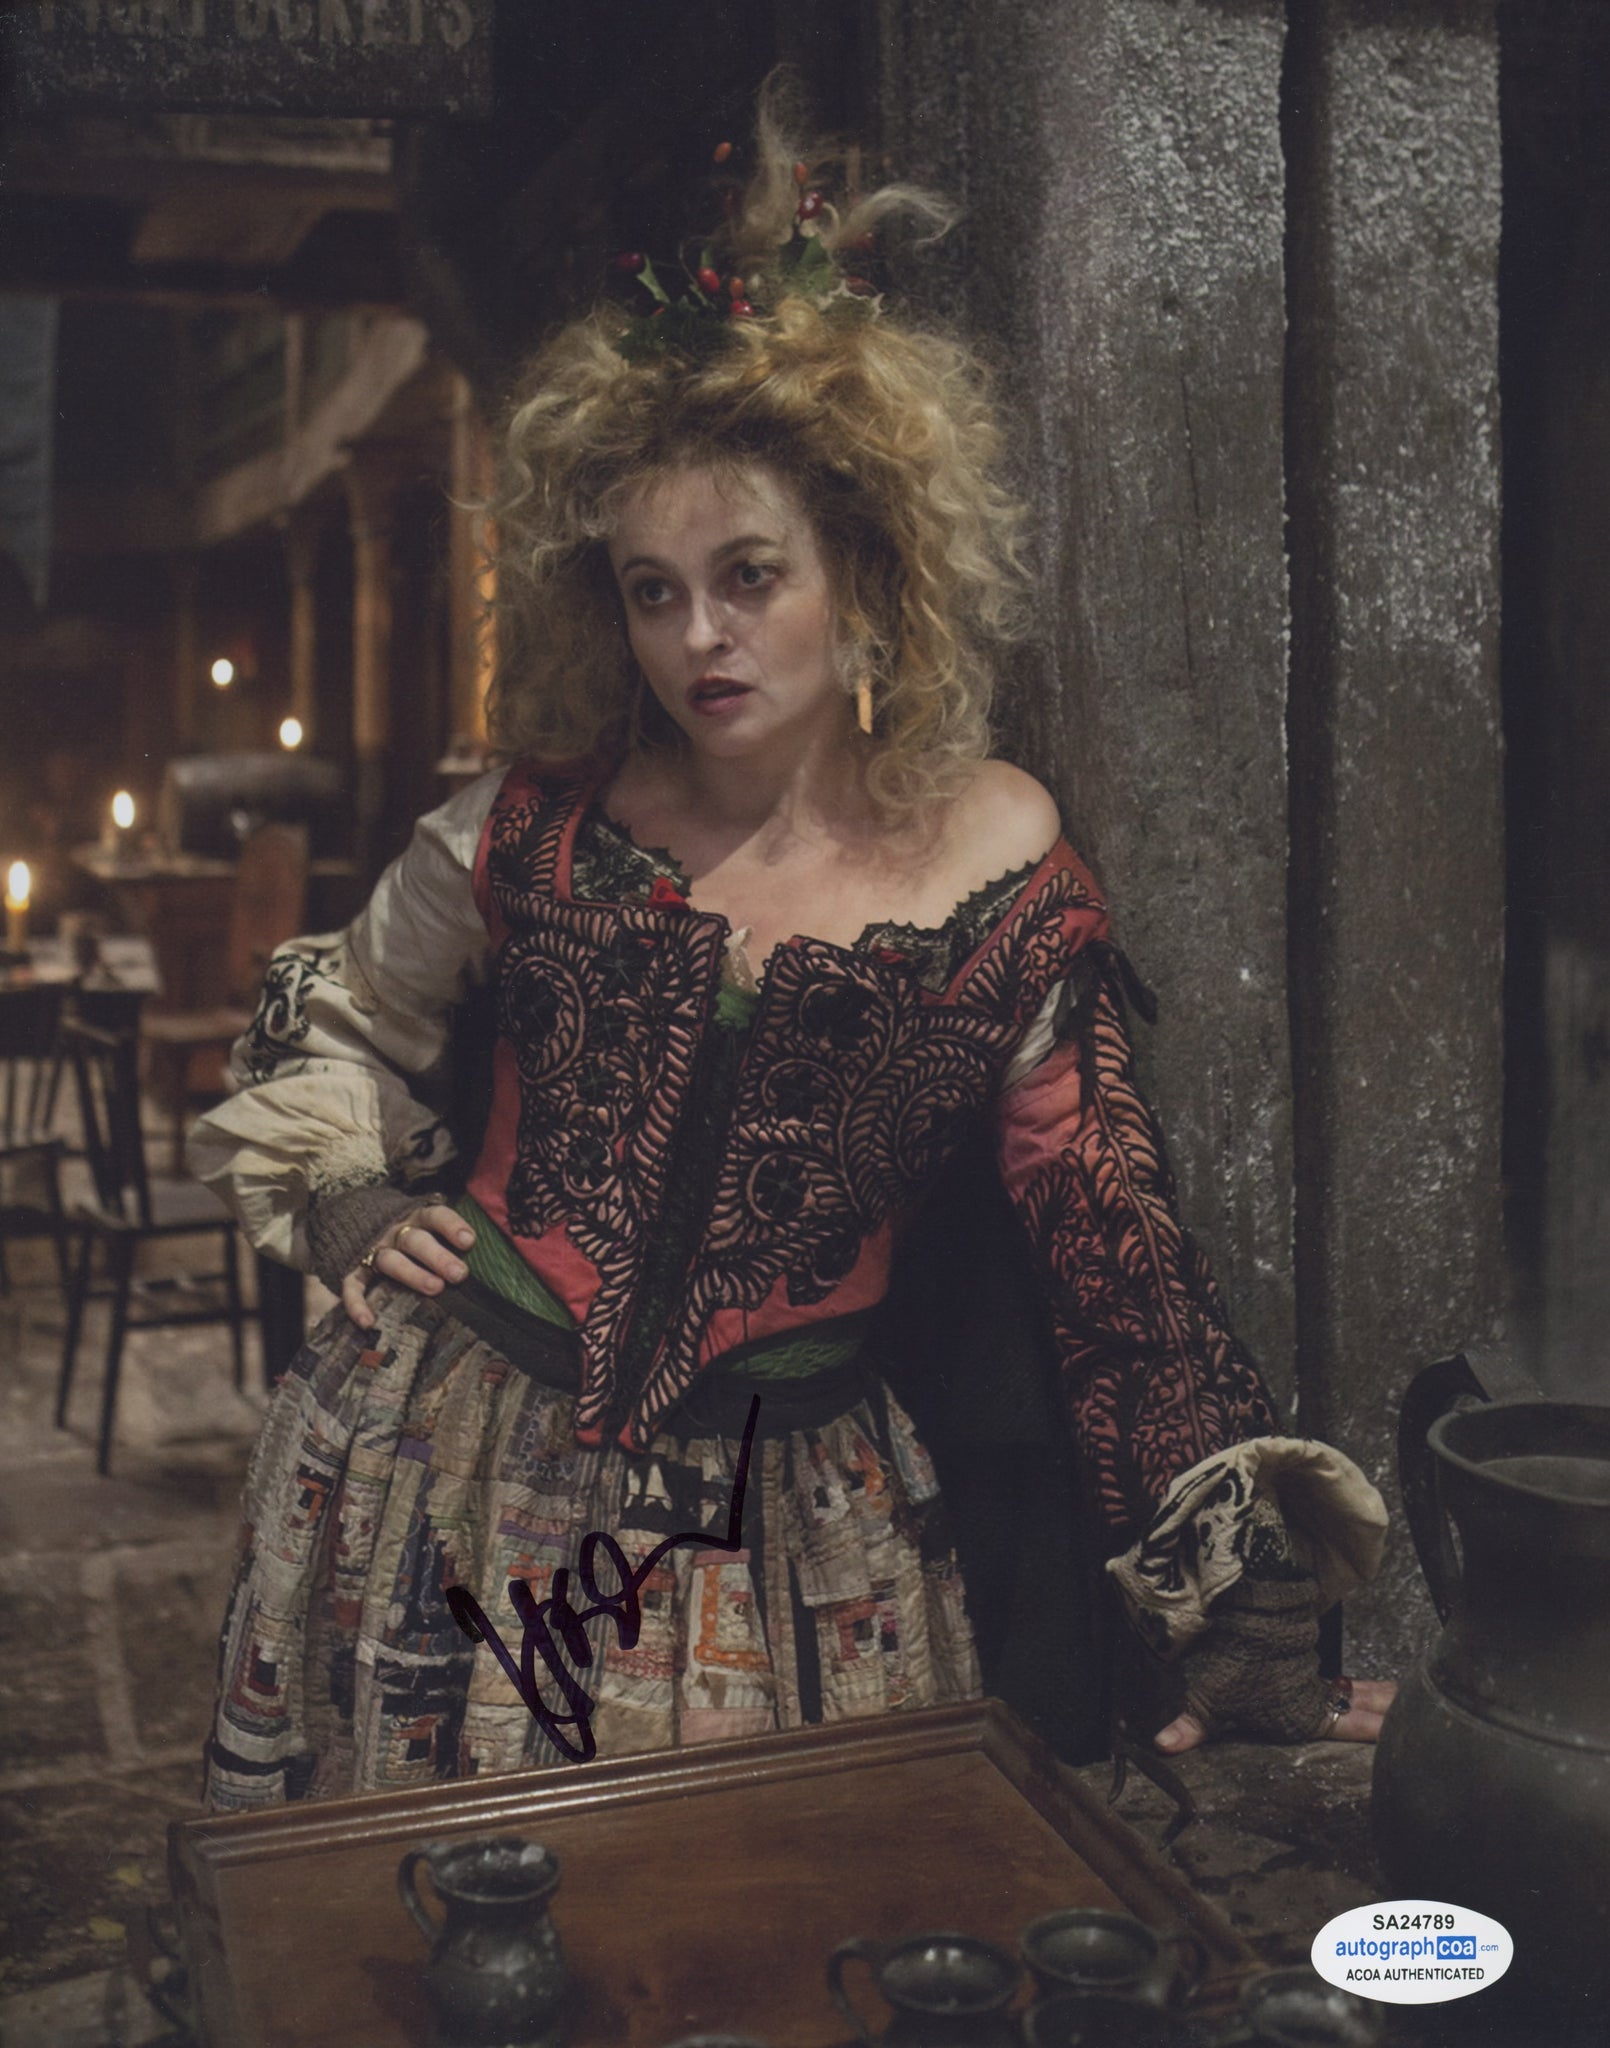 Helena Bonham Carter Les Miserables Signed Autograph 8x10 Photo ACOA #2 - Outlaw Hobbies Authentic Autographs